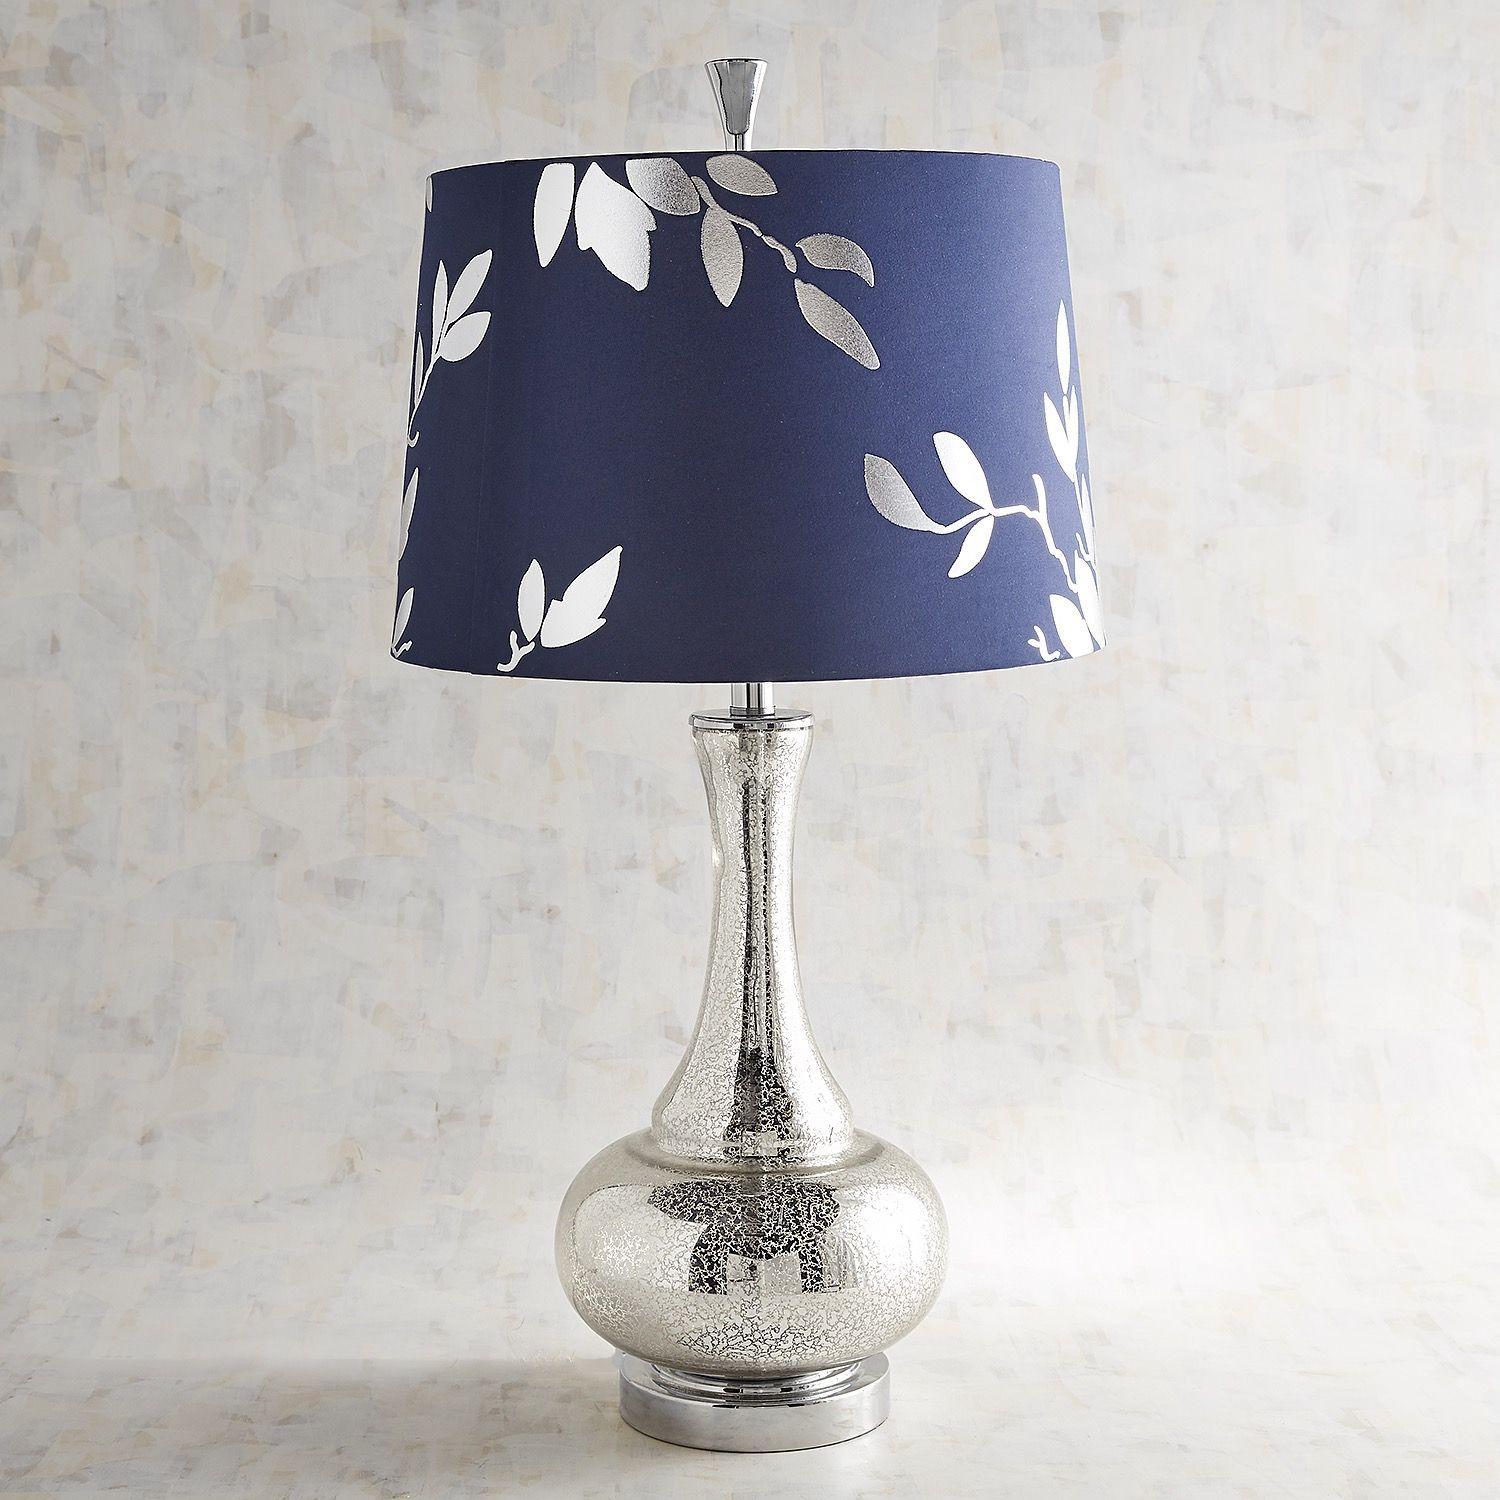 Navy Silver Leaf Glass Table Lamp Table Lamp Lamp Silver Lamp